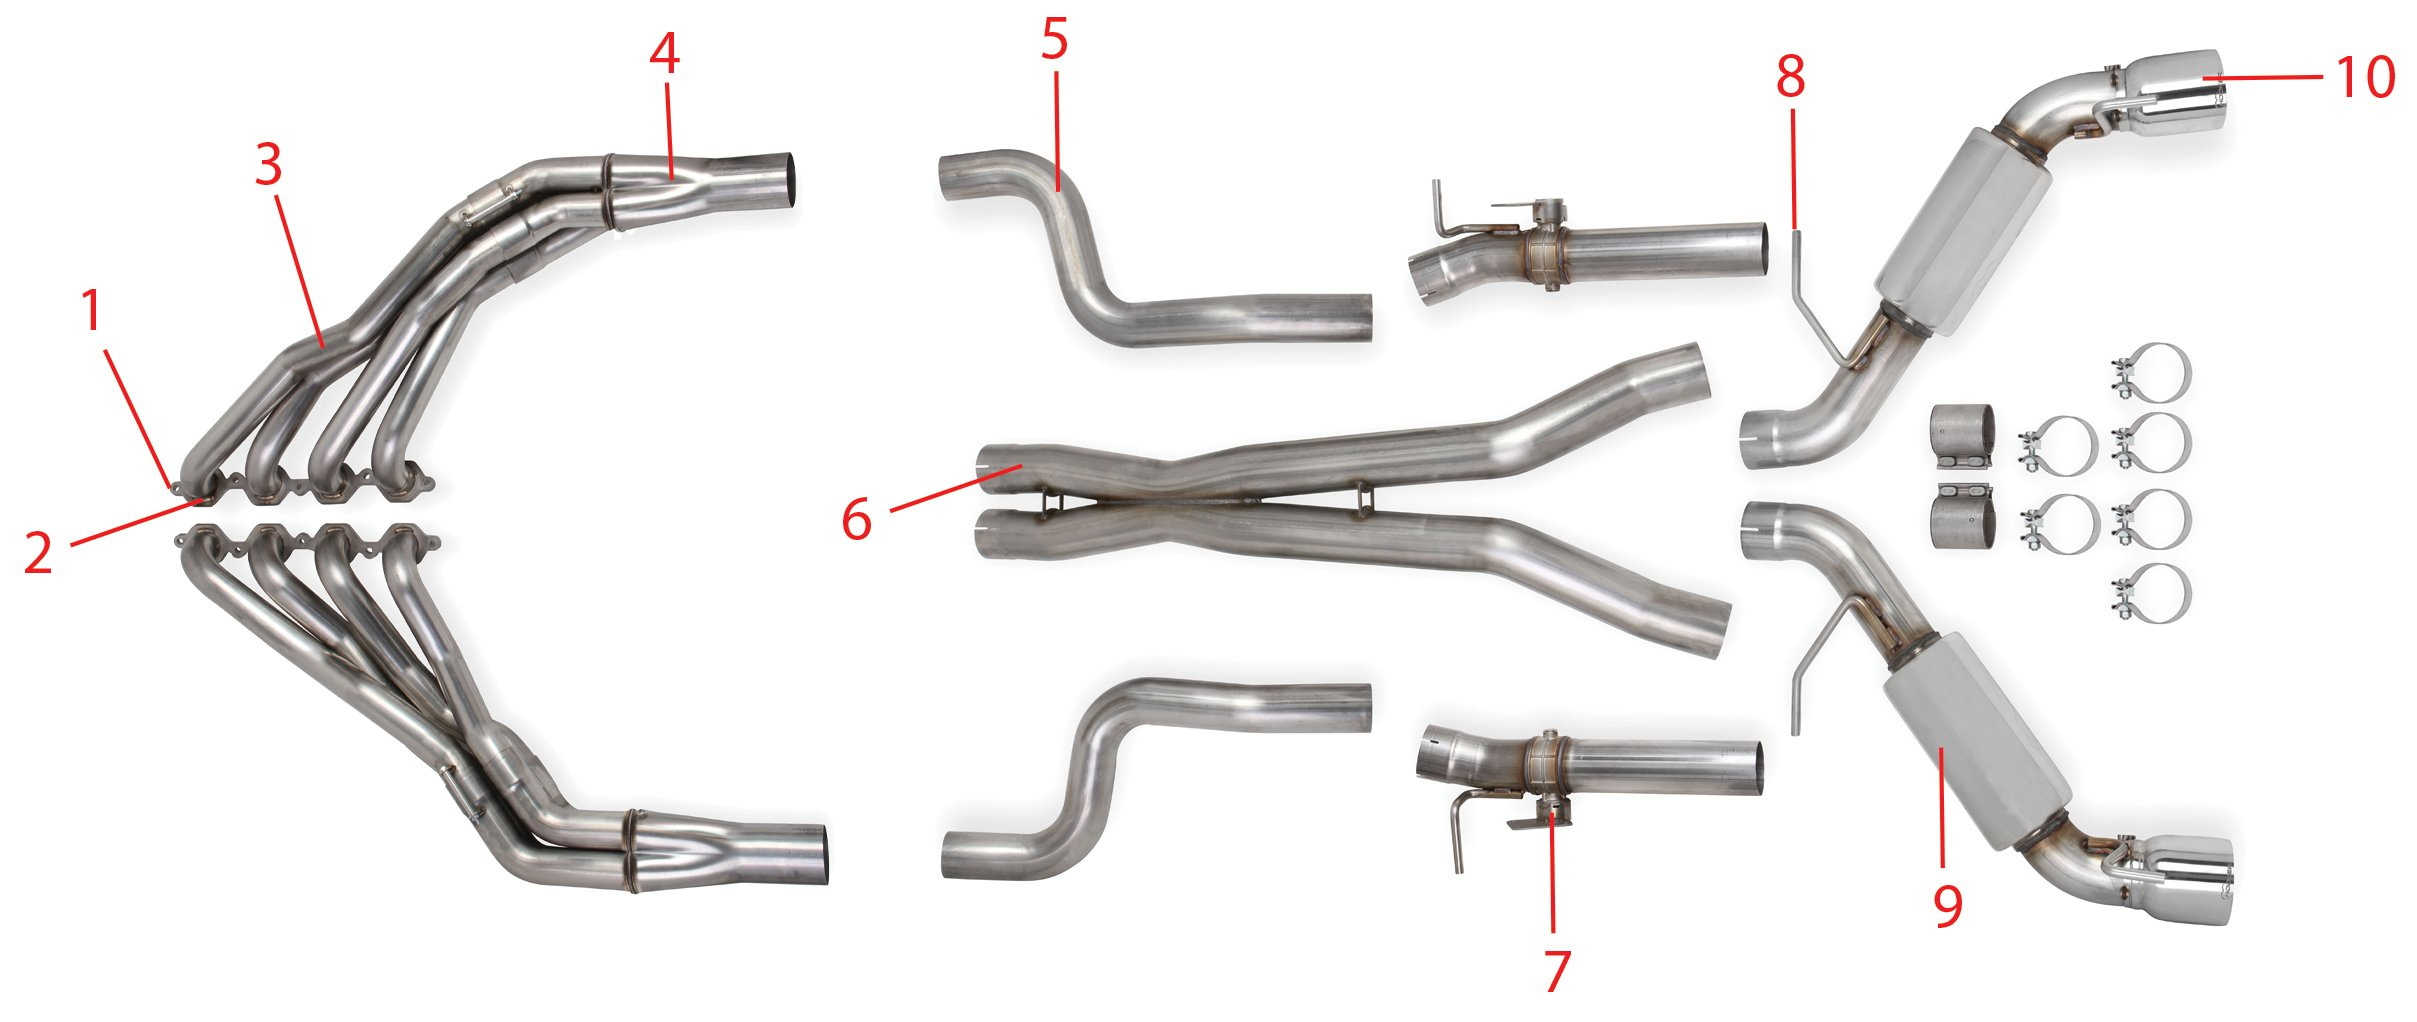 Chevy Trailblazer Exhaust System Diagram